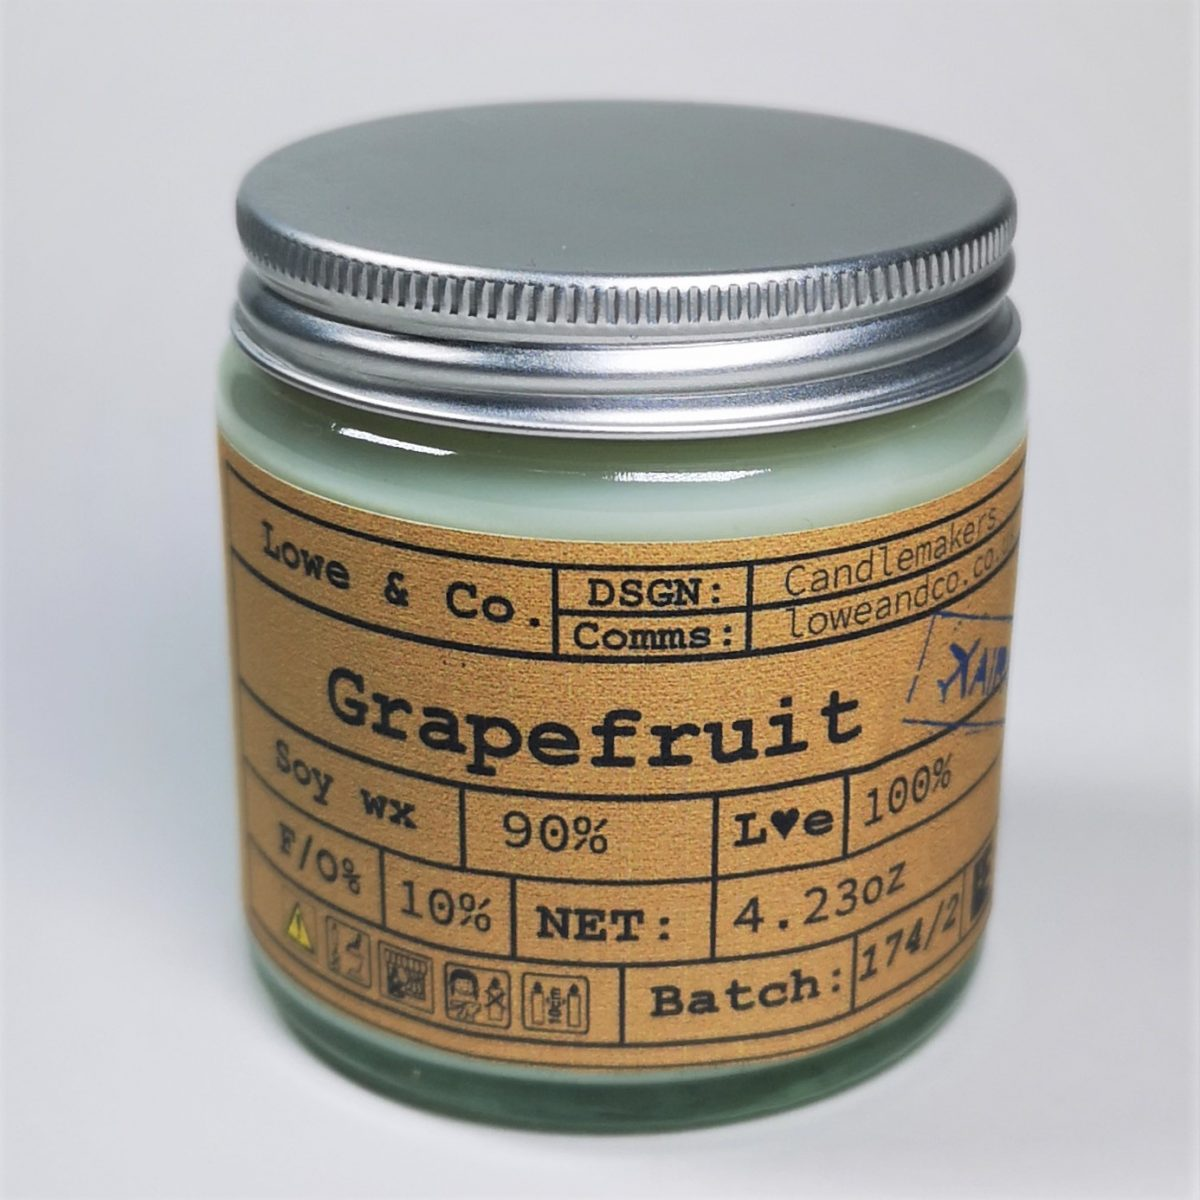 Grapefruit-clear-glass-candle